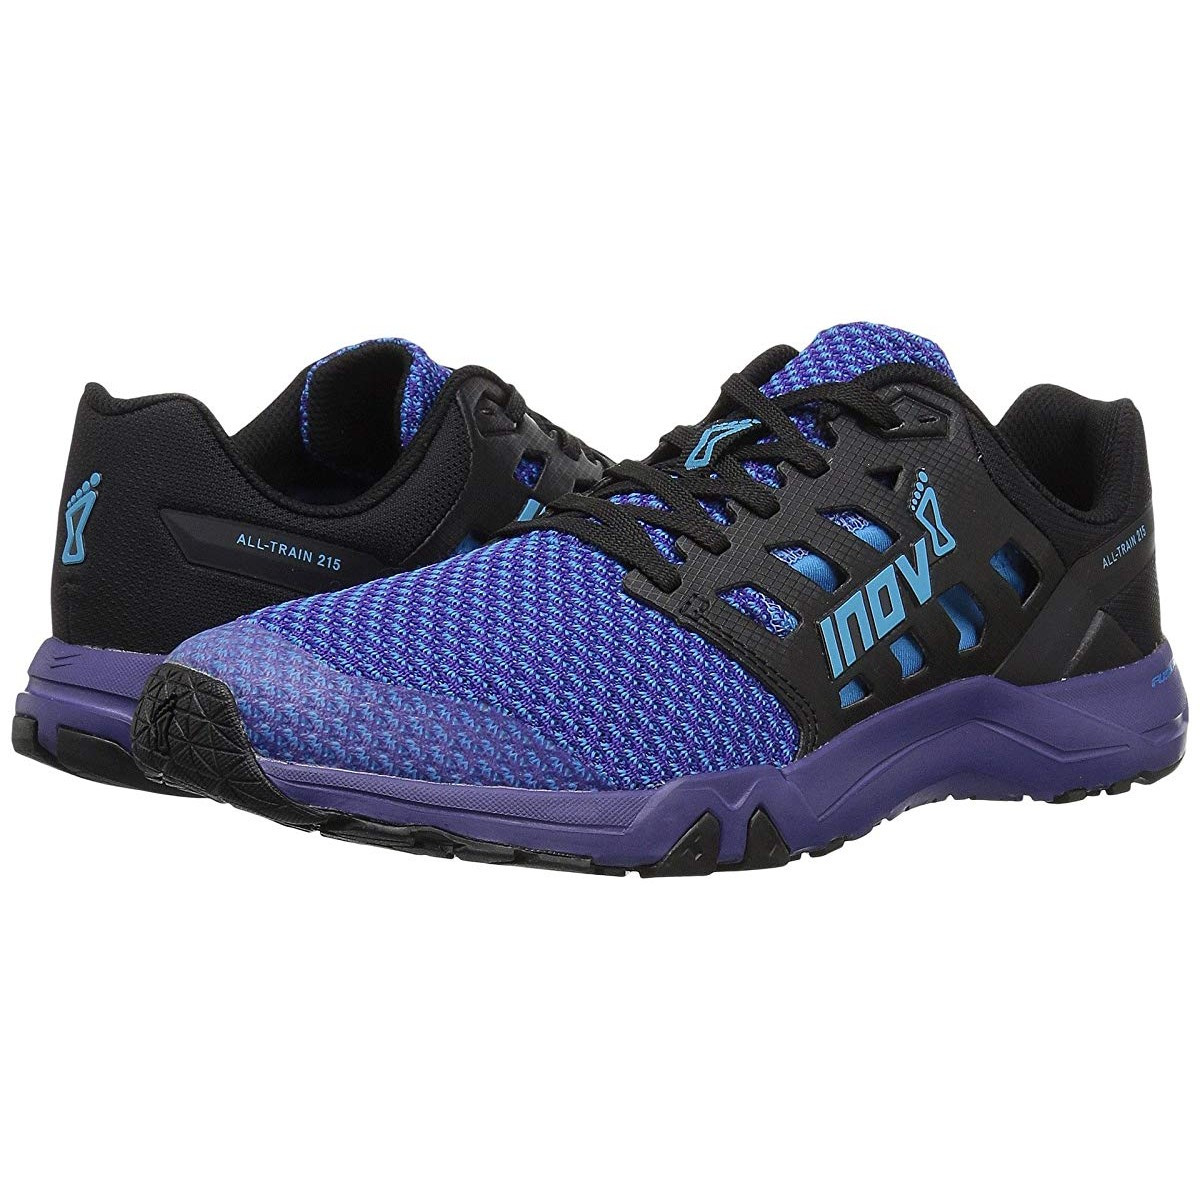 Кроссовки inov-8 All Train 215 Knit Blue/Purple - Оригинал, фото 1